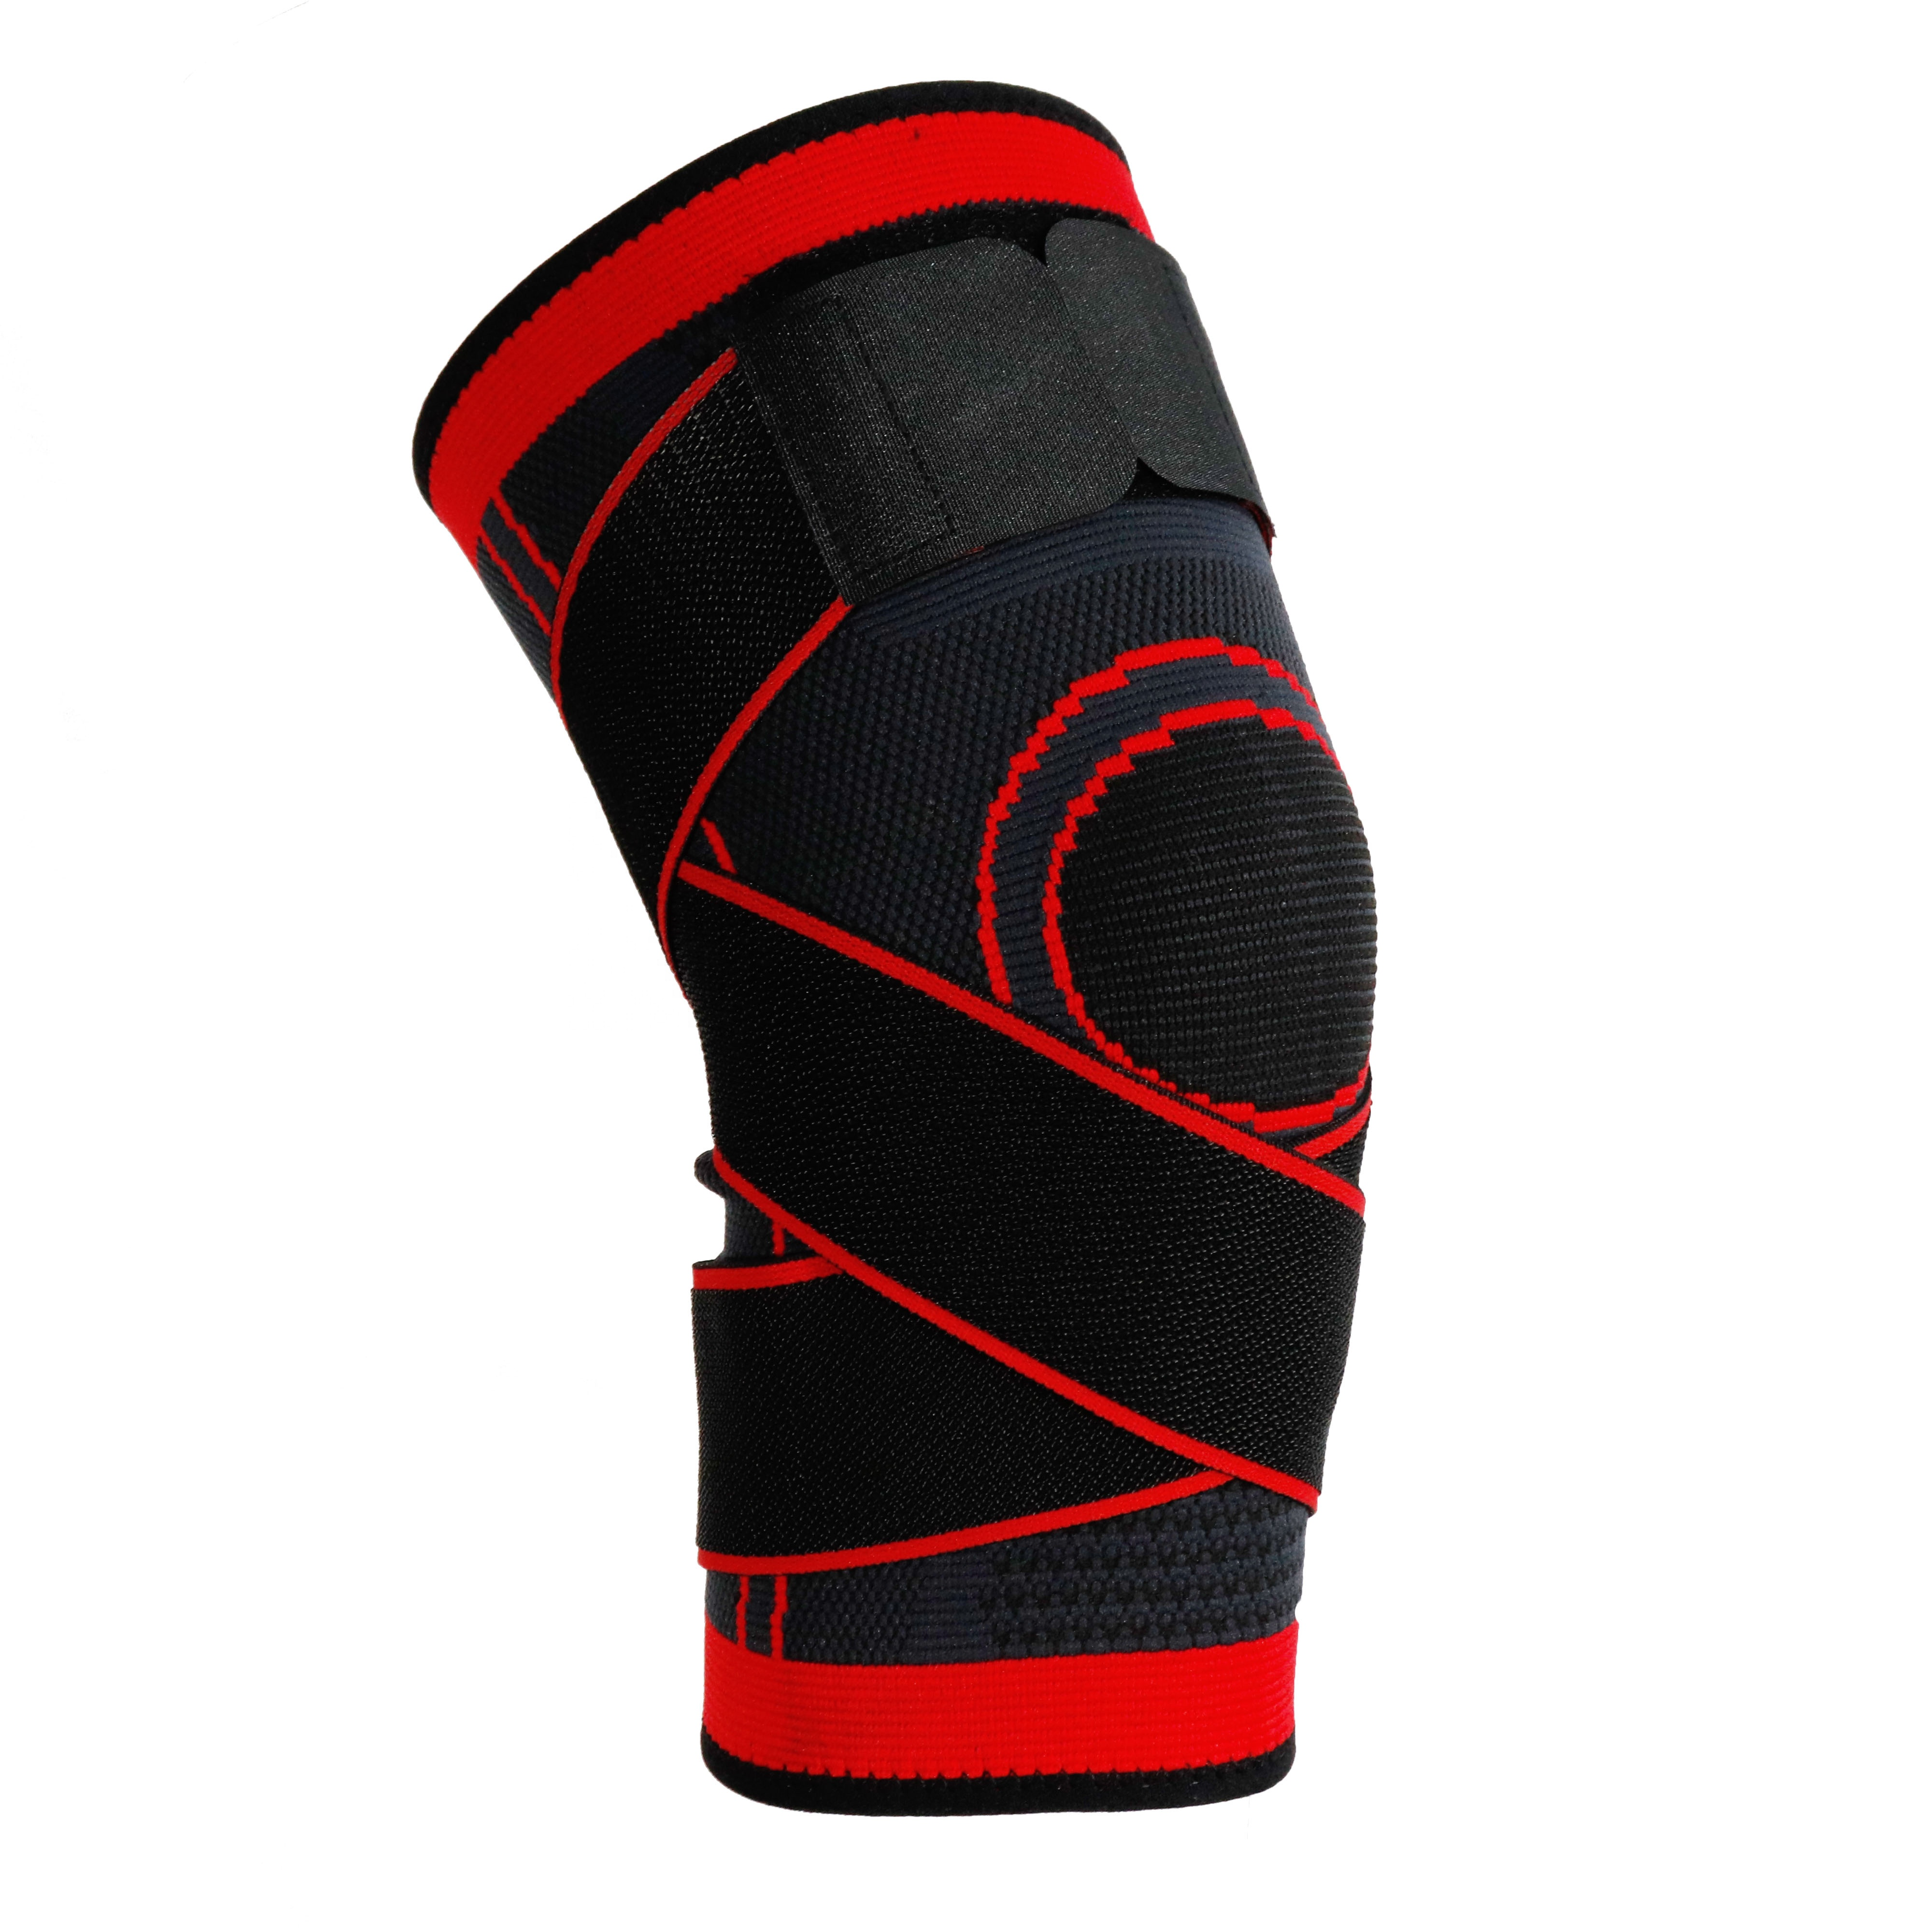 Unisex Knee Support Brace for Hot and Cold Therapy Adjustable Wrap Multi-Purpose Reusable, Orange